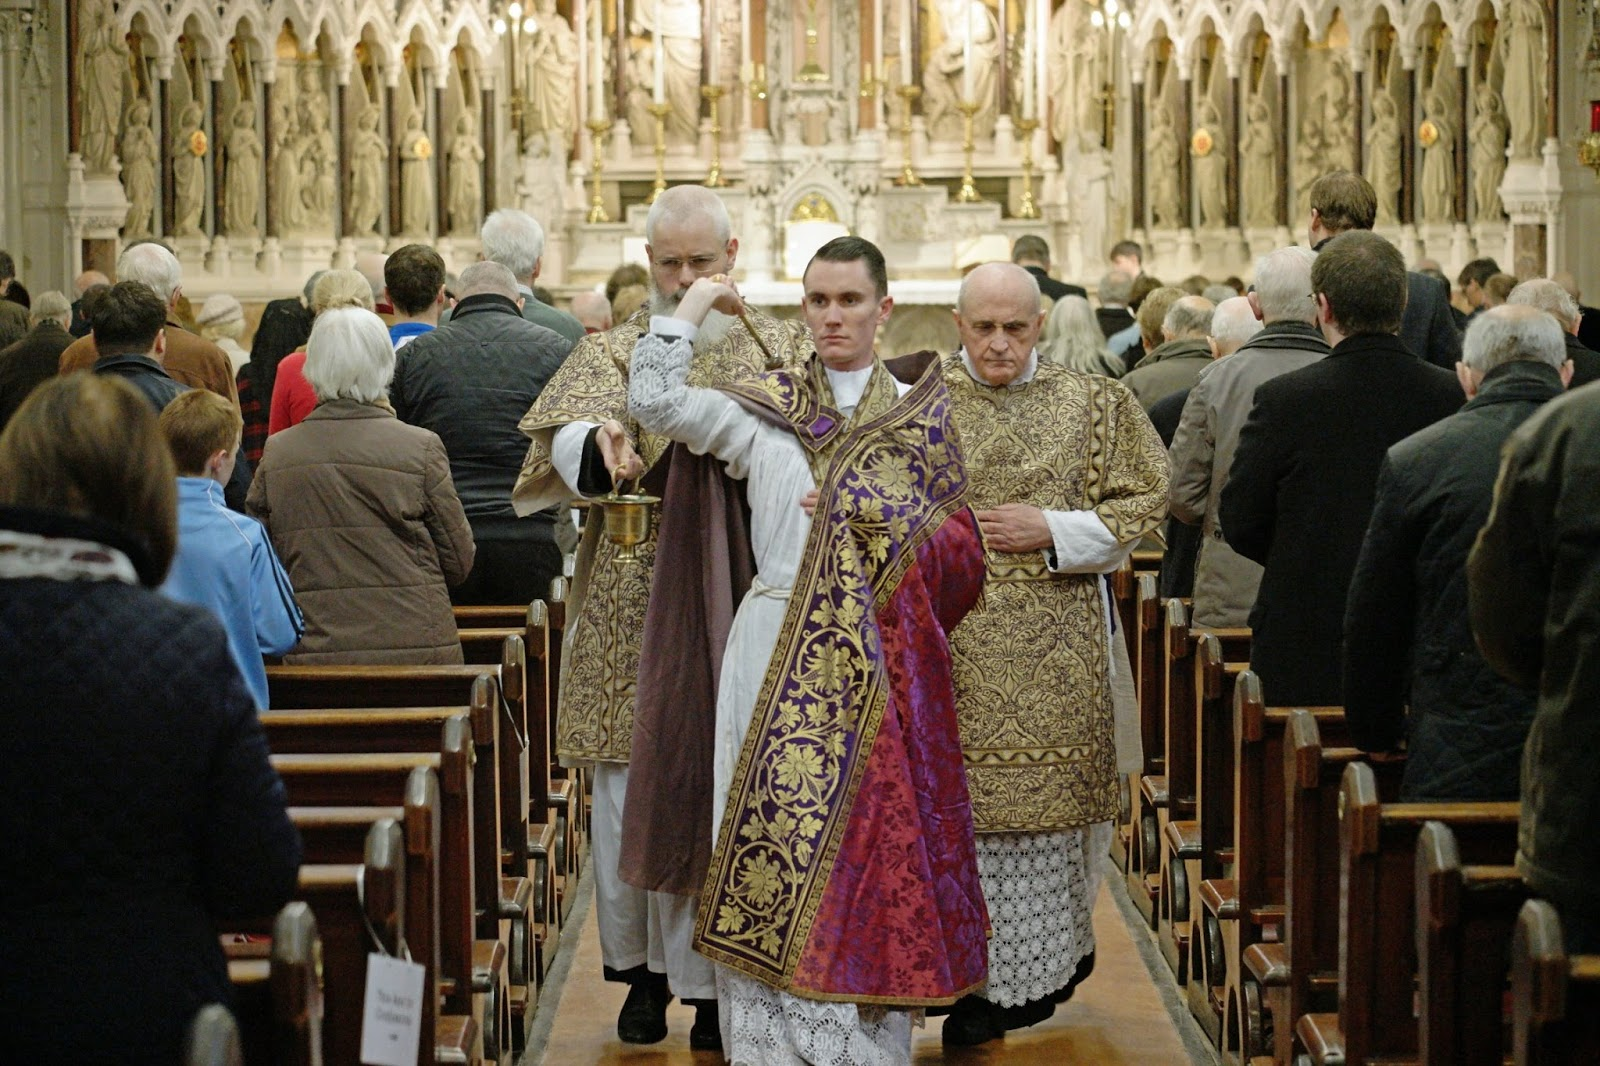 New Liturgical Movement: A First Mass in Ireland